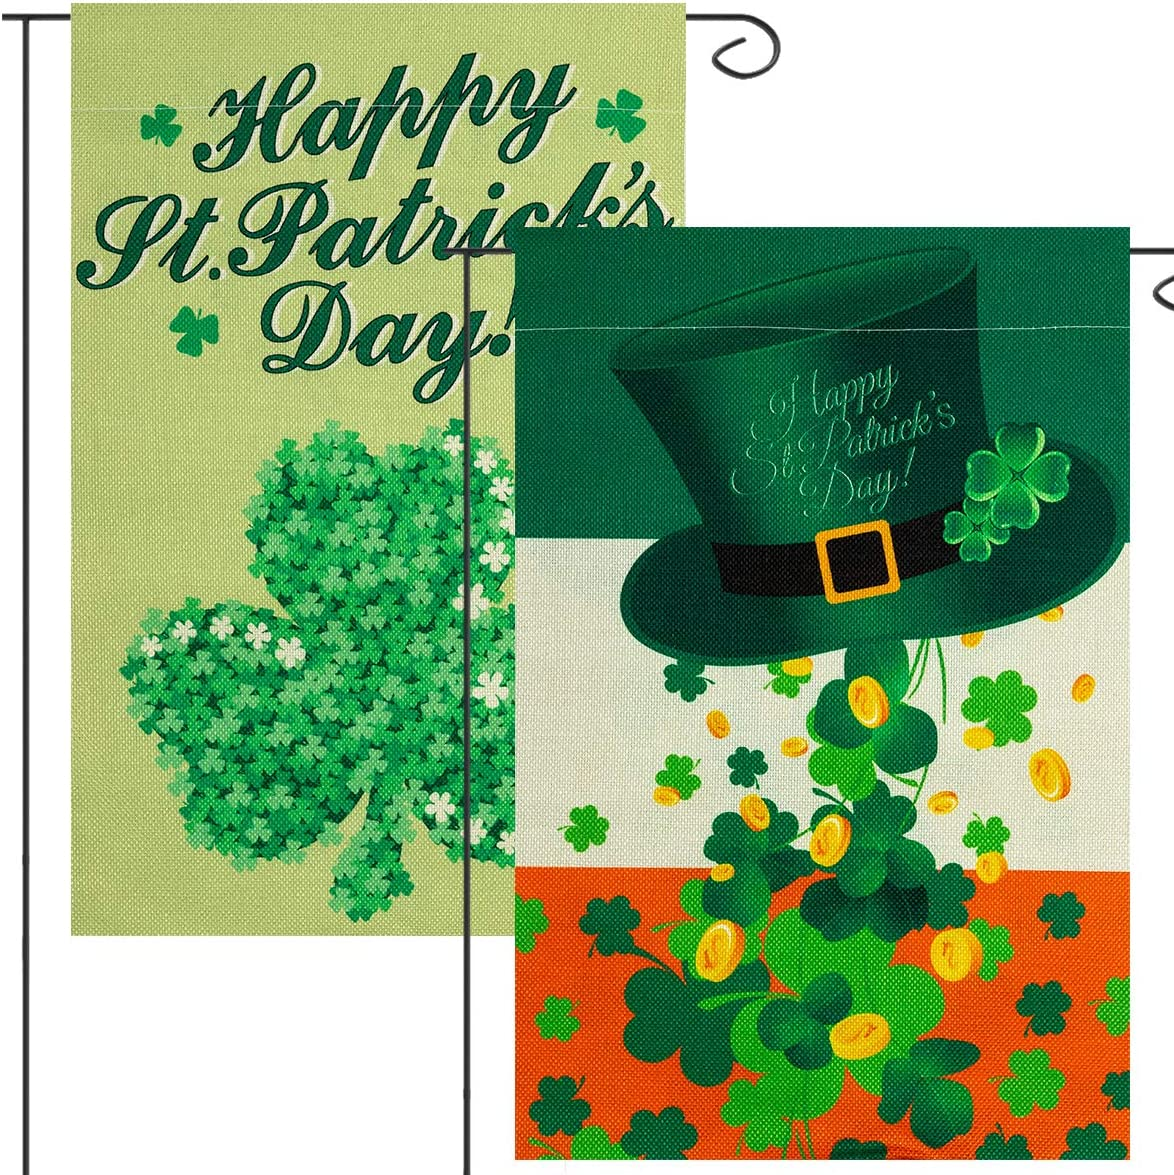 Apipi 2 Packs 12 x 18 inches Happy St. Patrick's Day Garden Flag- Green Shamrock Clover+ Leprechaun Top Hat Seasonal Double Sided Burlap House Decorative Flag for Outdoor Lawn Yard Garden Decoration